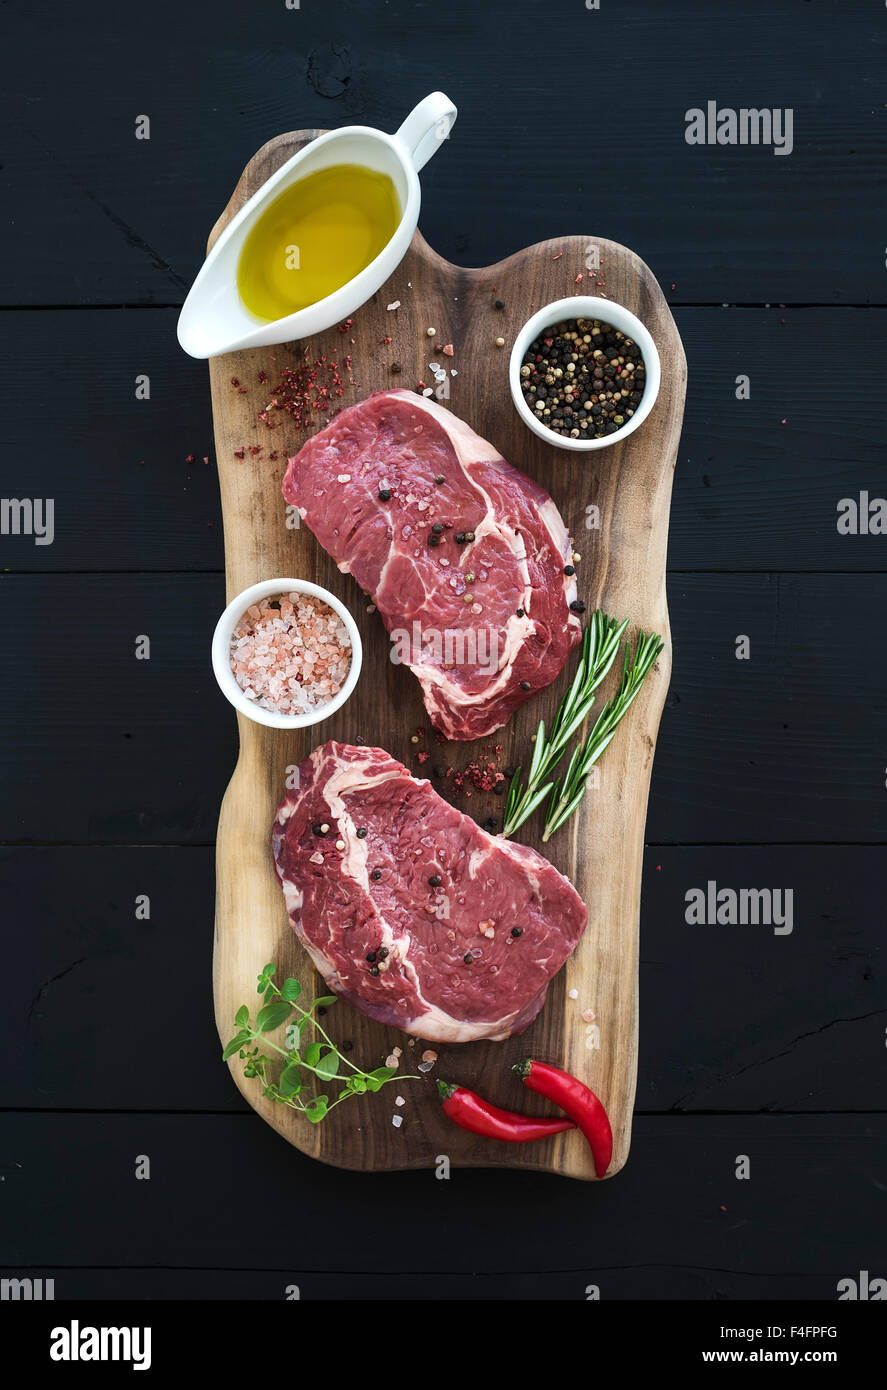 Raw fresh meat Ribeye steak entrecote and seasonings on cutting board on dark wooden background, top view Stock Photo